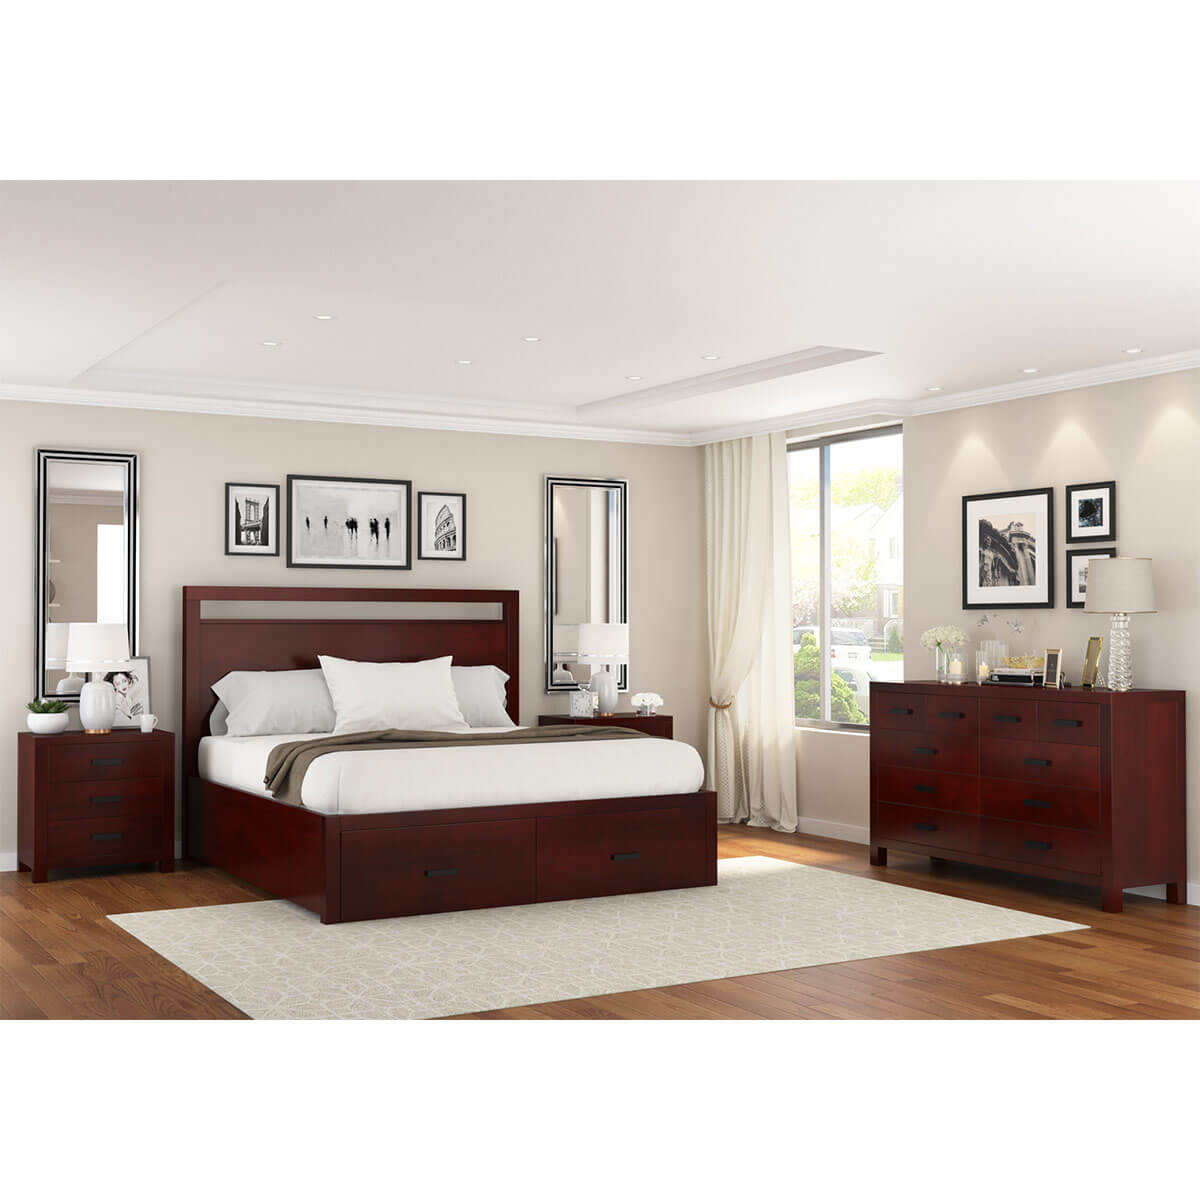 Transitional Bedroom Furniture: Anniston Transitional 4 Piece Bedroom Set